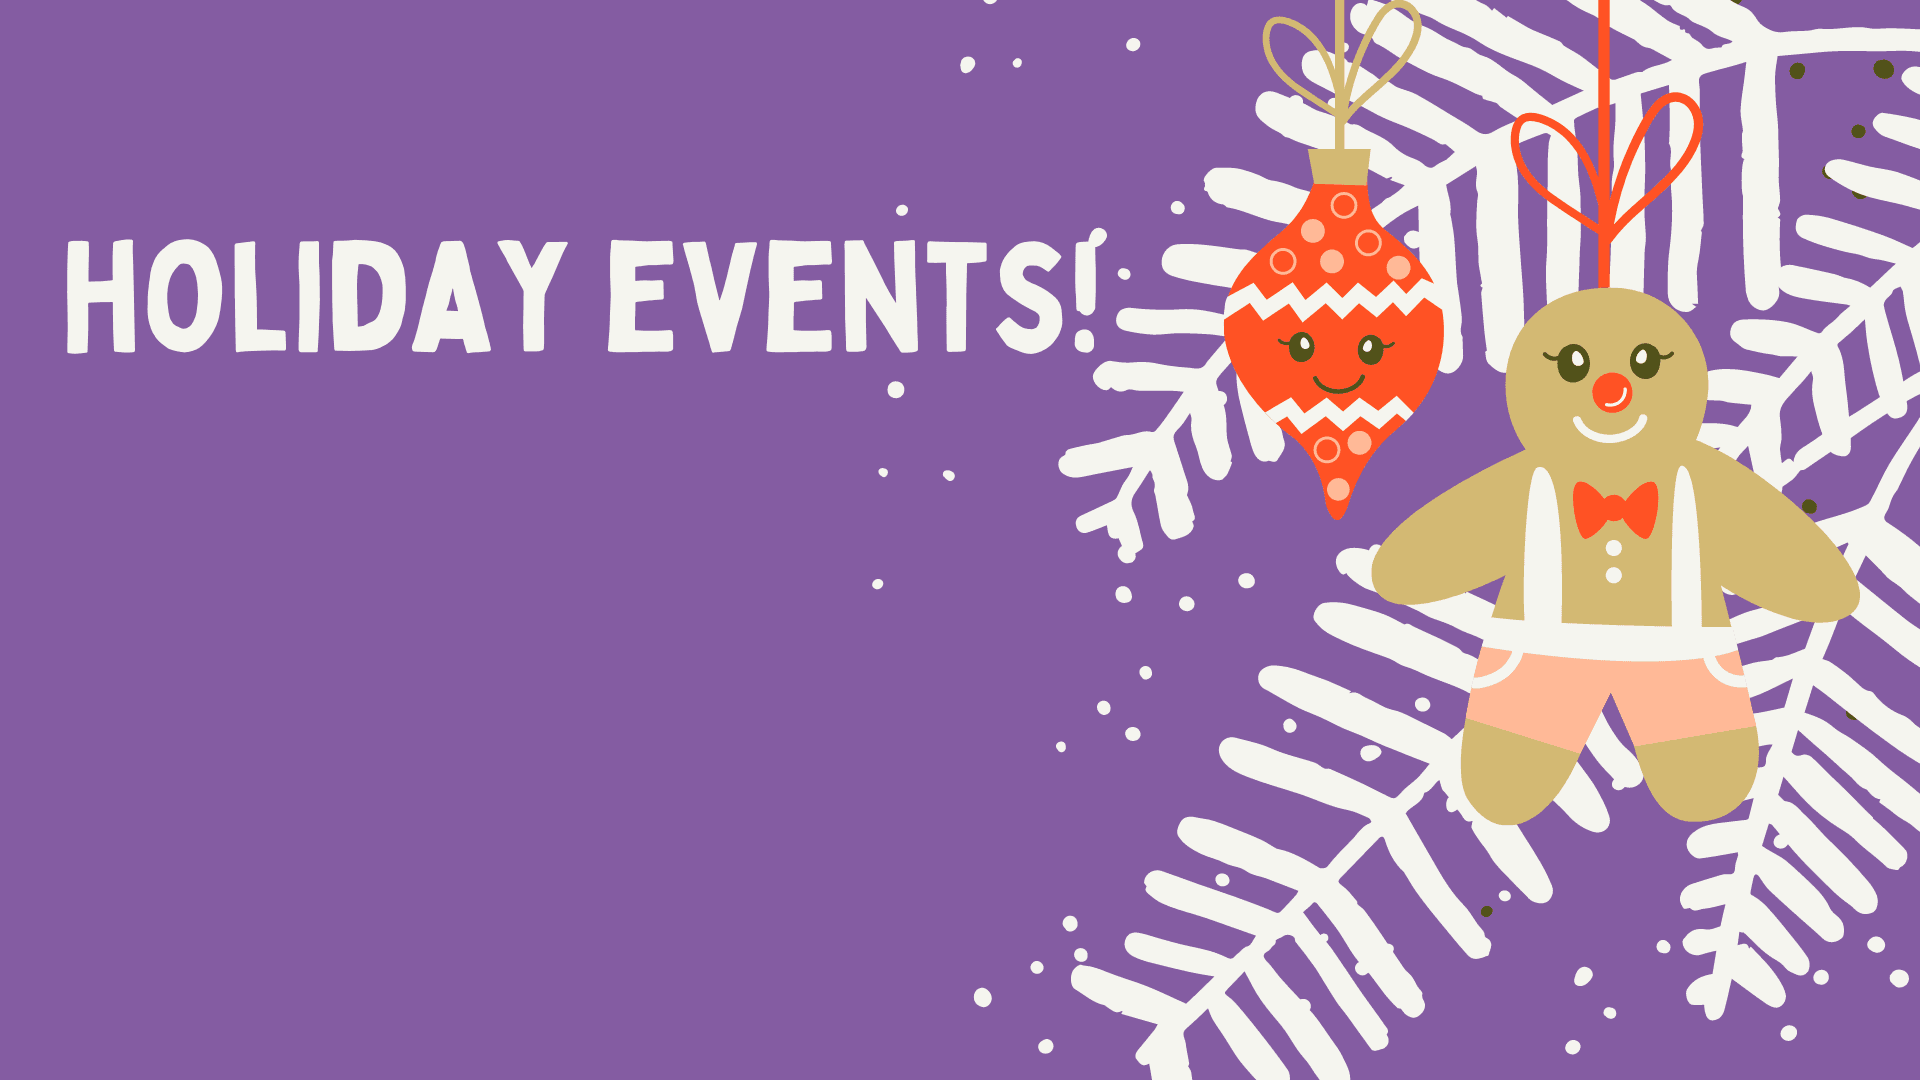 Holiday Events!